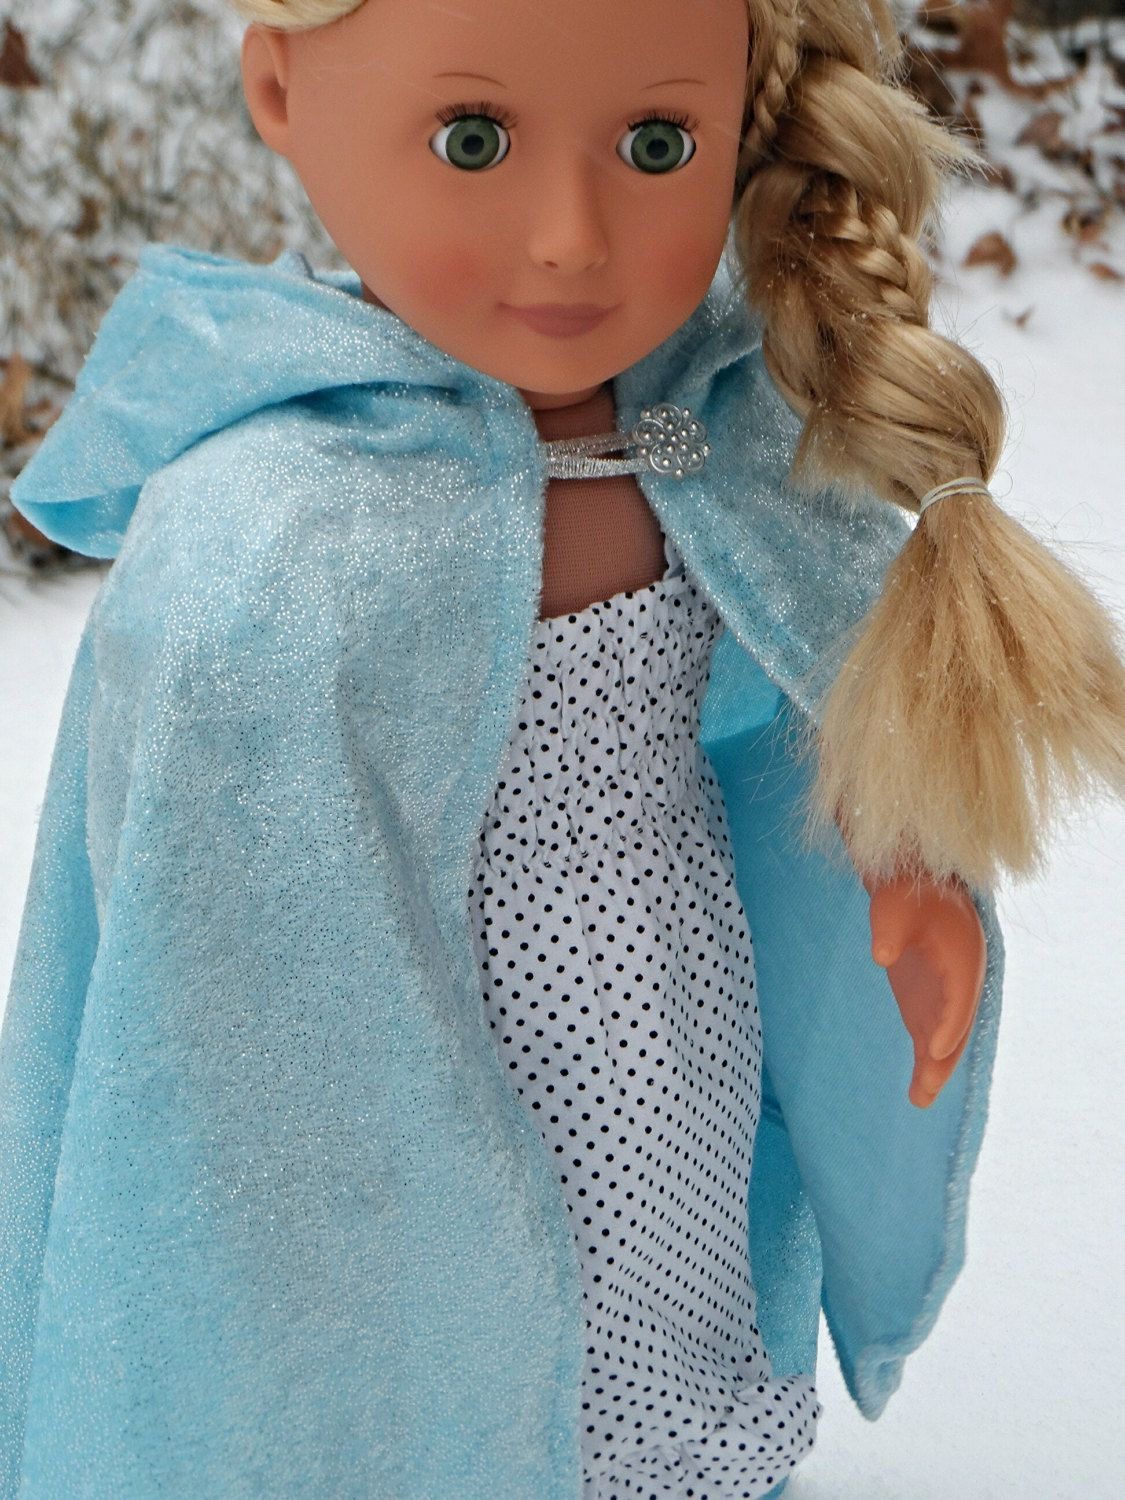 """Elsa / Once Upon a Time / Snow Queen inspired Cloak / Cape for American Girl 18"""" Doll Crushed Sparkle Velvet Ready to go- Frozen Elf Hobbit cloak gift once upon a time snow white Frozen princess cape costume 18 inch doll Elsa Lord of the Rings cosplay Snow Queen 18.00 USD #goriani"""